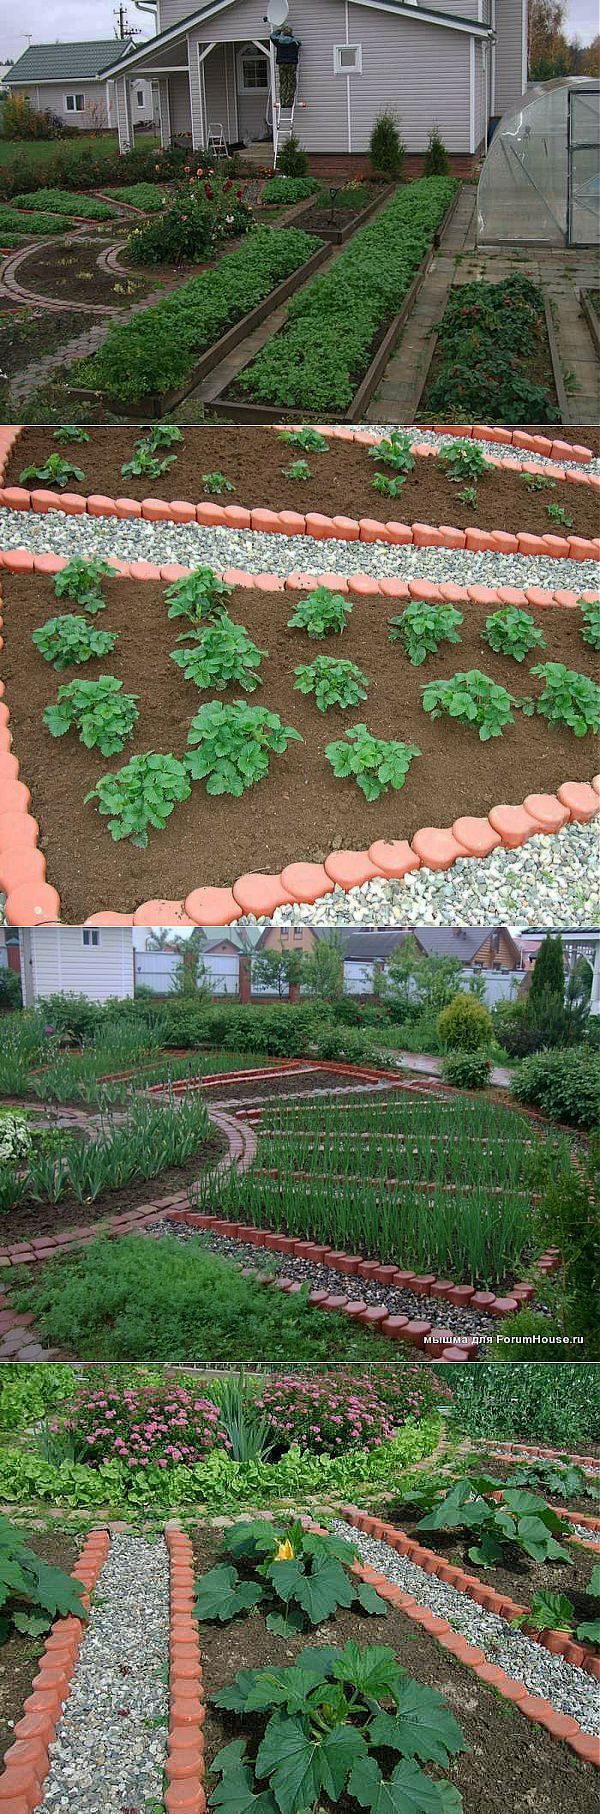 Beautiful vegetable and flower gardens - Find This Pin And More On Beautiful Vegetable Gardens